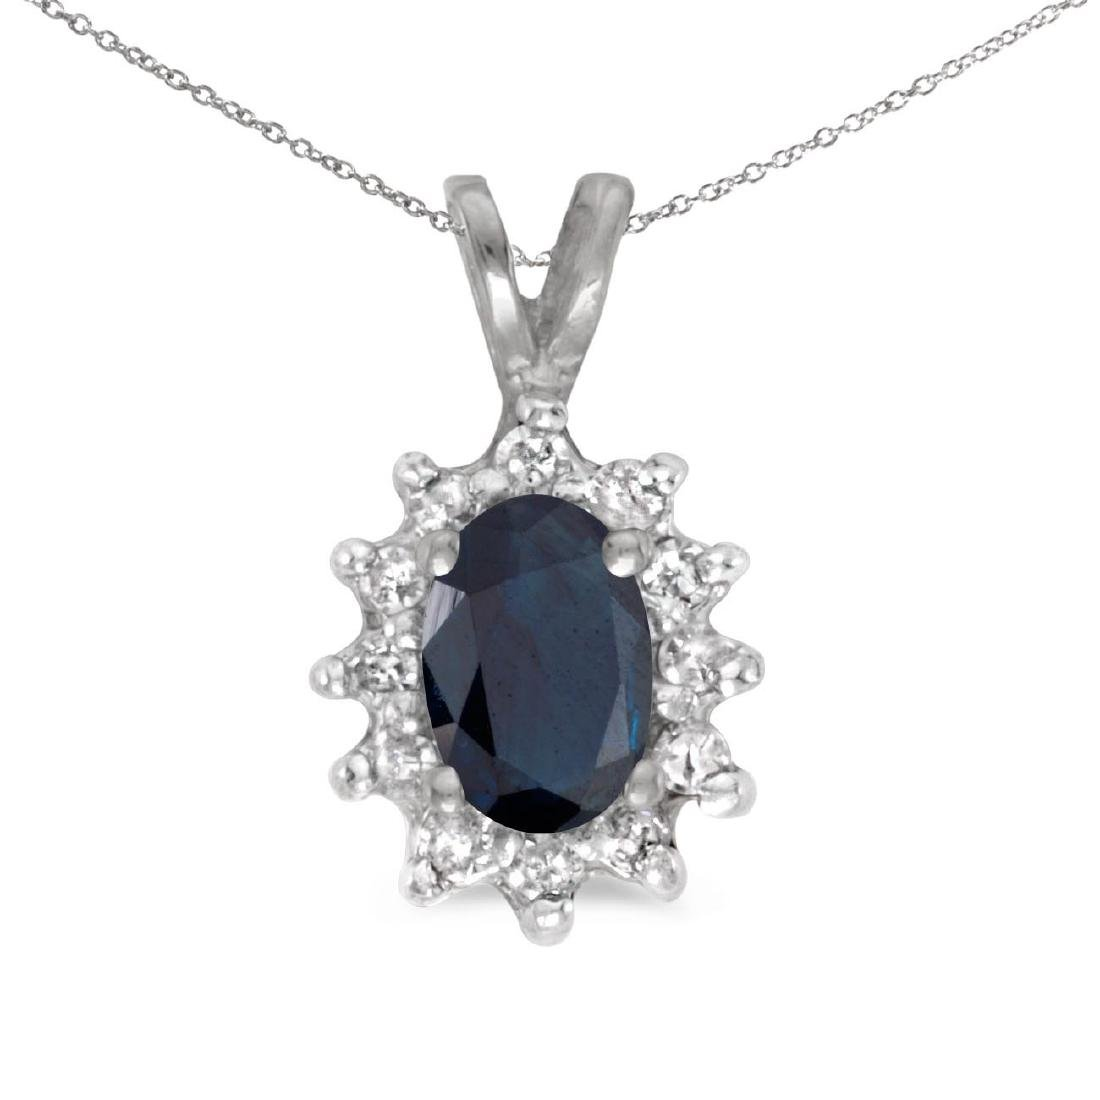 Certified 10k White Gold Oval Sapphire And Diamond Pend